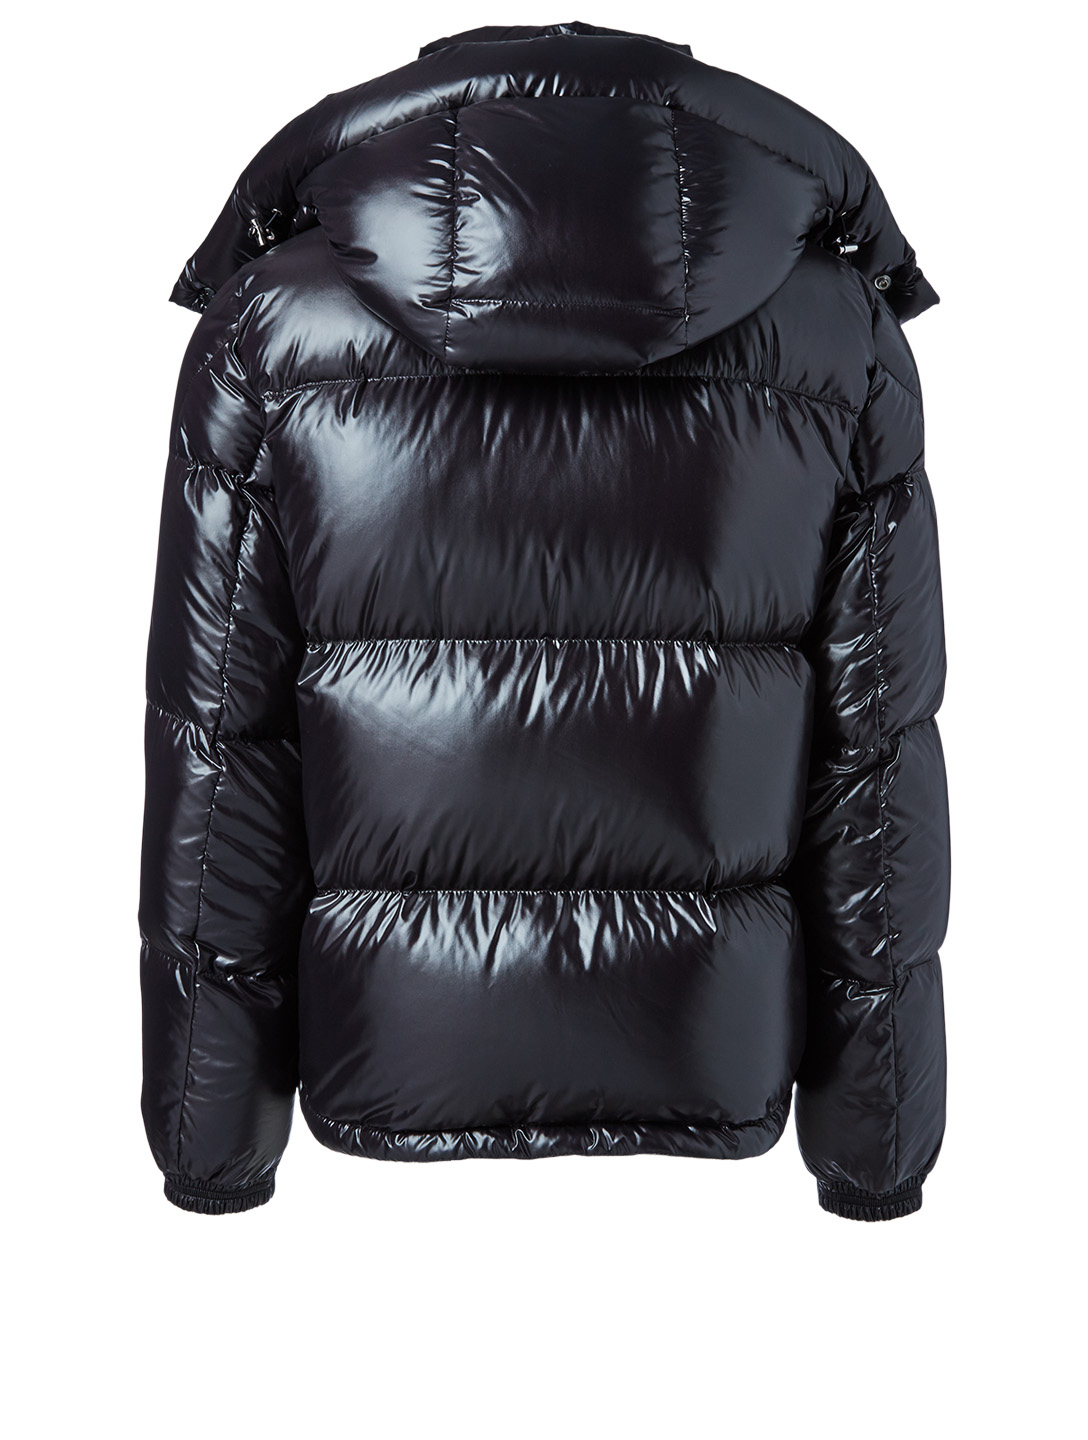 MONCLER Montbeliard Down Jacket Men's Black